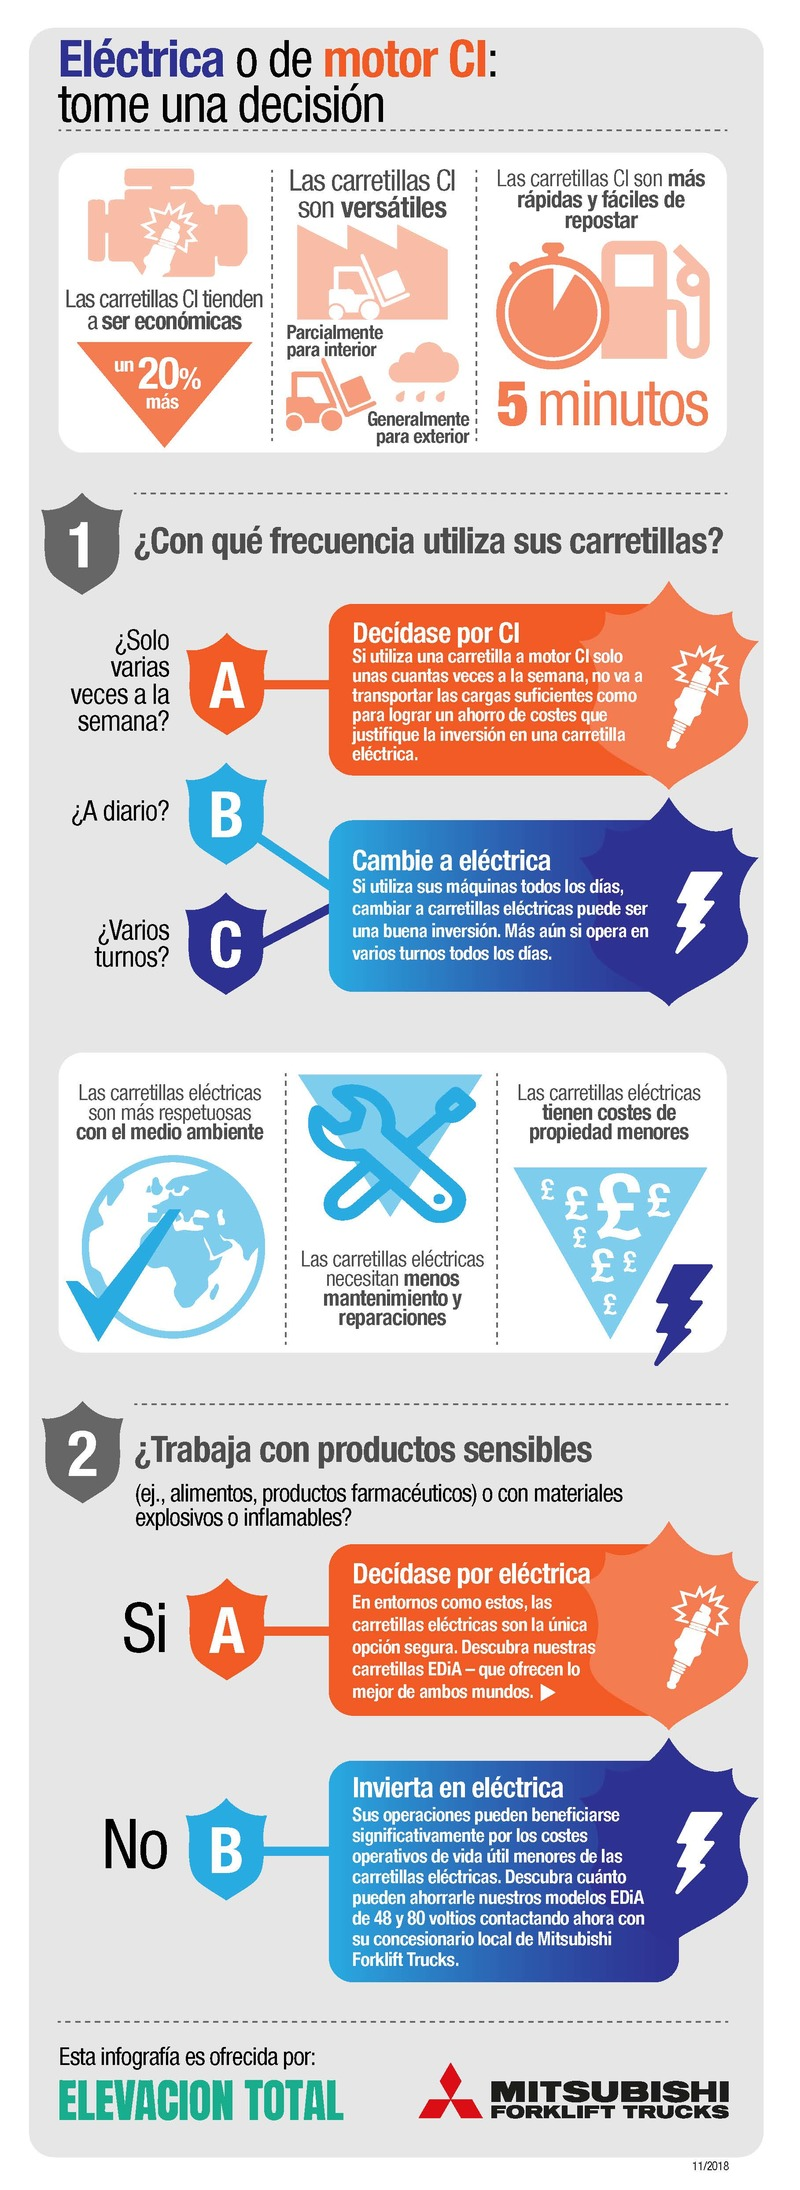 icve-infographic-spanish-proof2.jpg